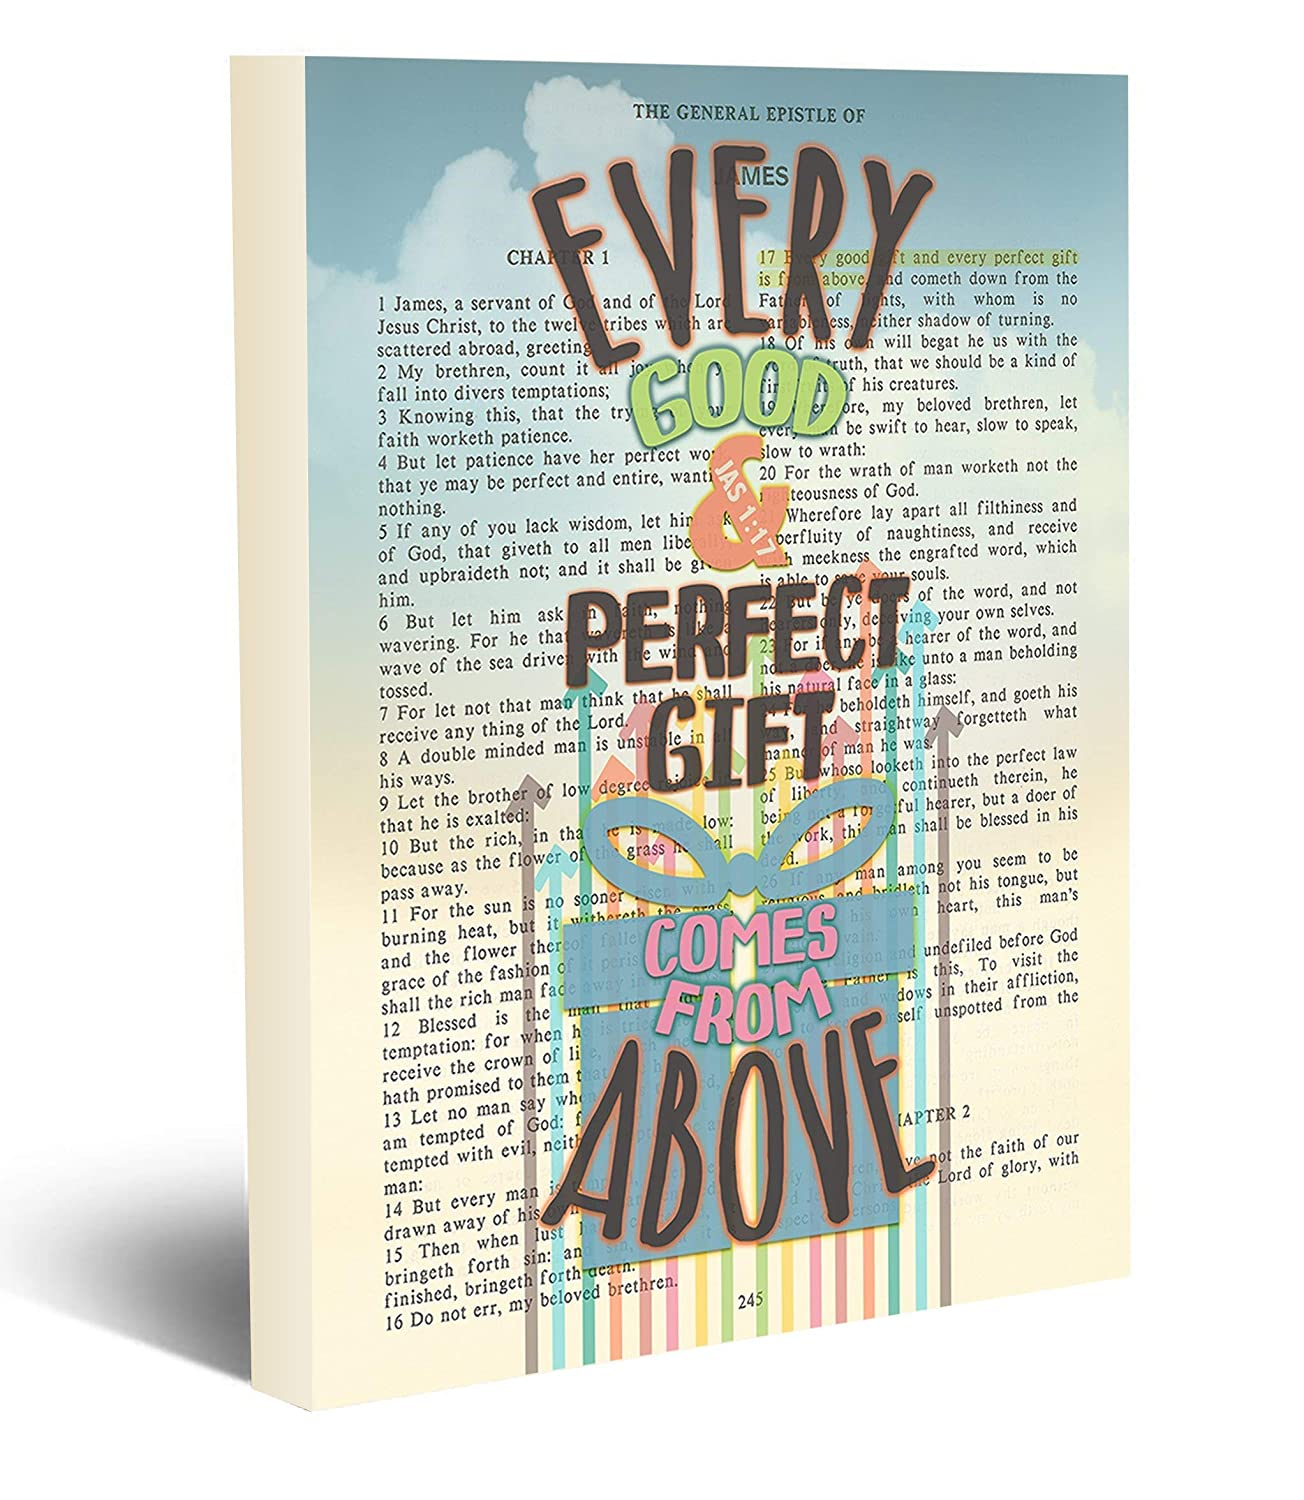 Amazon.com: Every Good and Perfect Gift Comes from Above - James 1:17  Vintage Bible Page Verse Scripture - Christian Wall Art Wrapped Canvas,  Christian Wall and Home Decor, All Sizes: Handmade